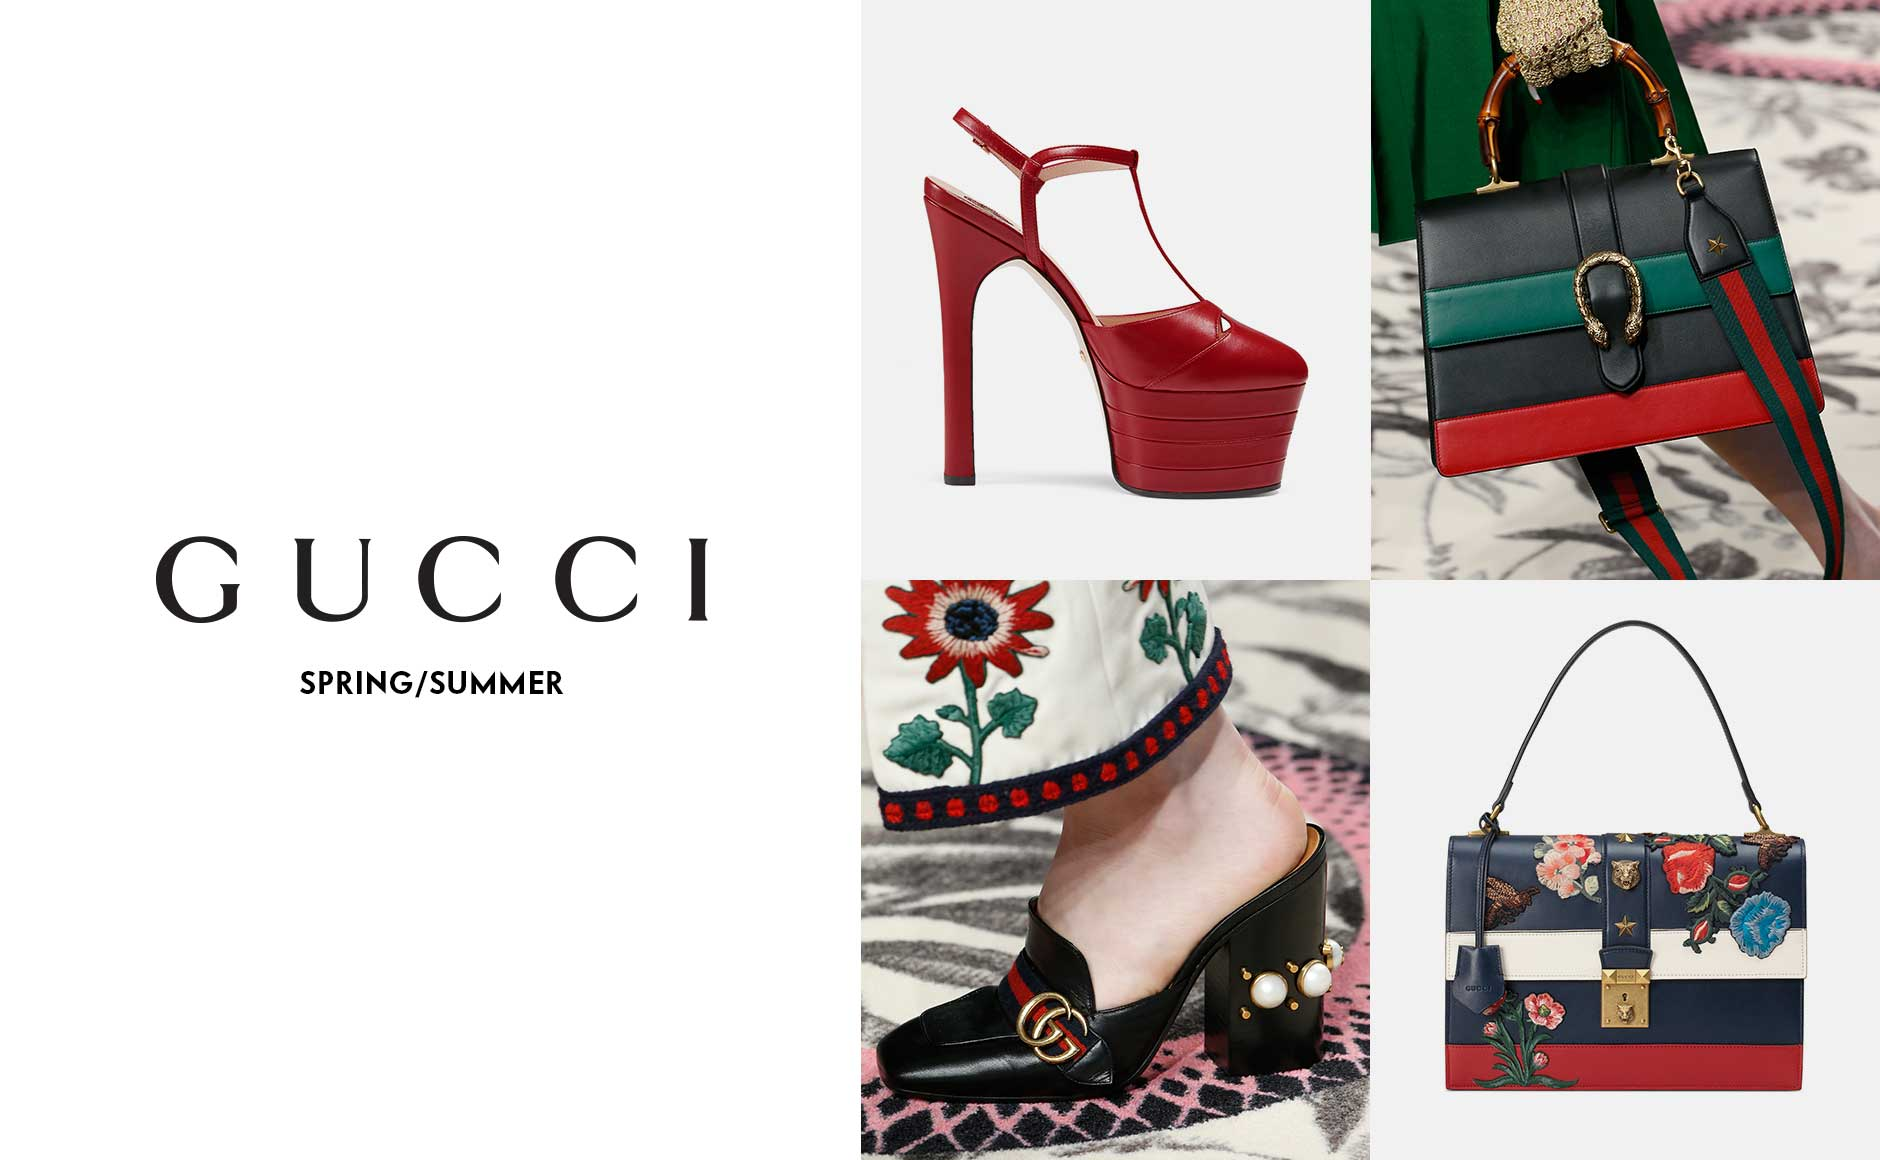 Gucci - Spring/Summer